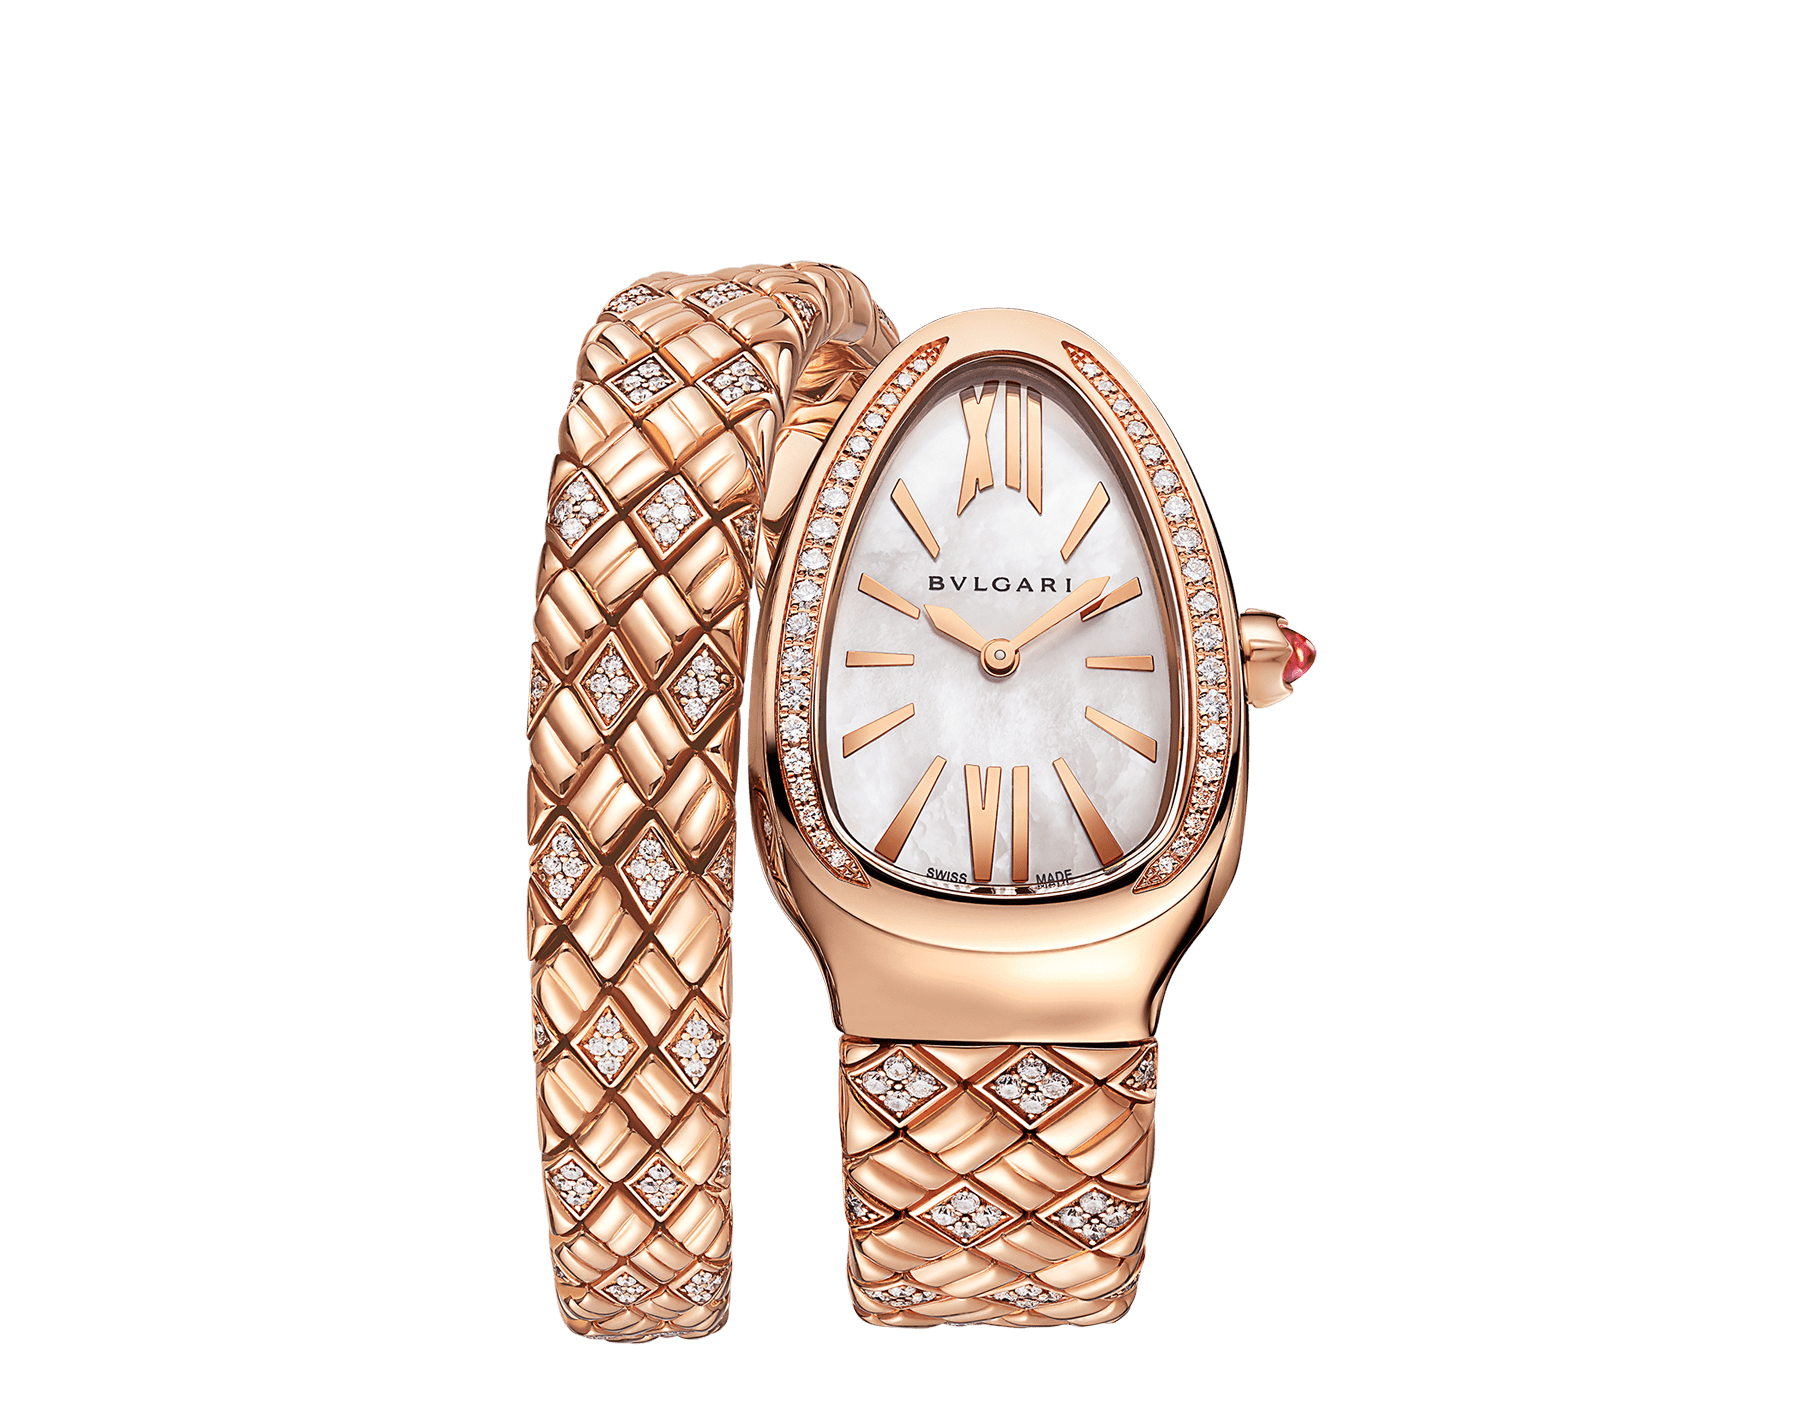 NEW SERPENTI SPIGA WATCH